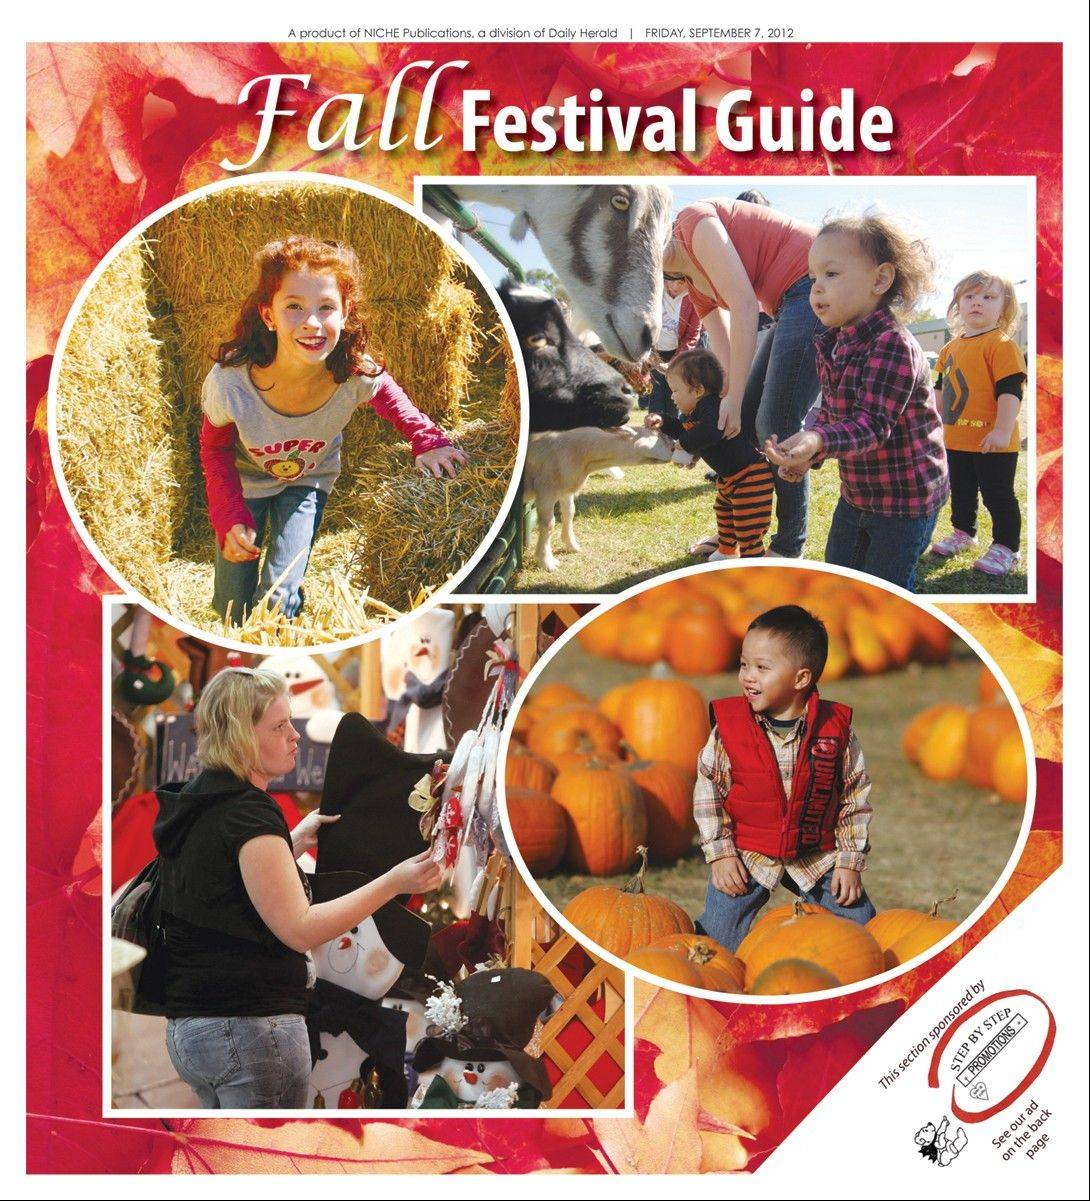 Our guide to the fall festivals of 2012